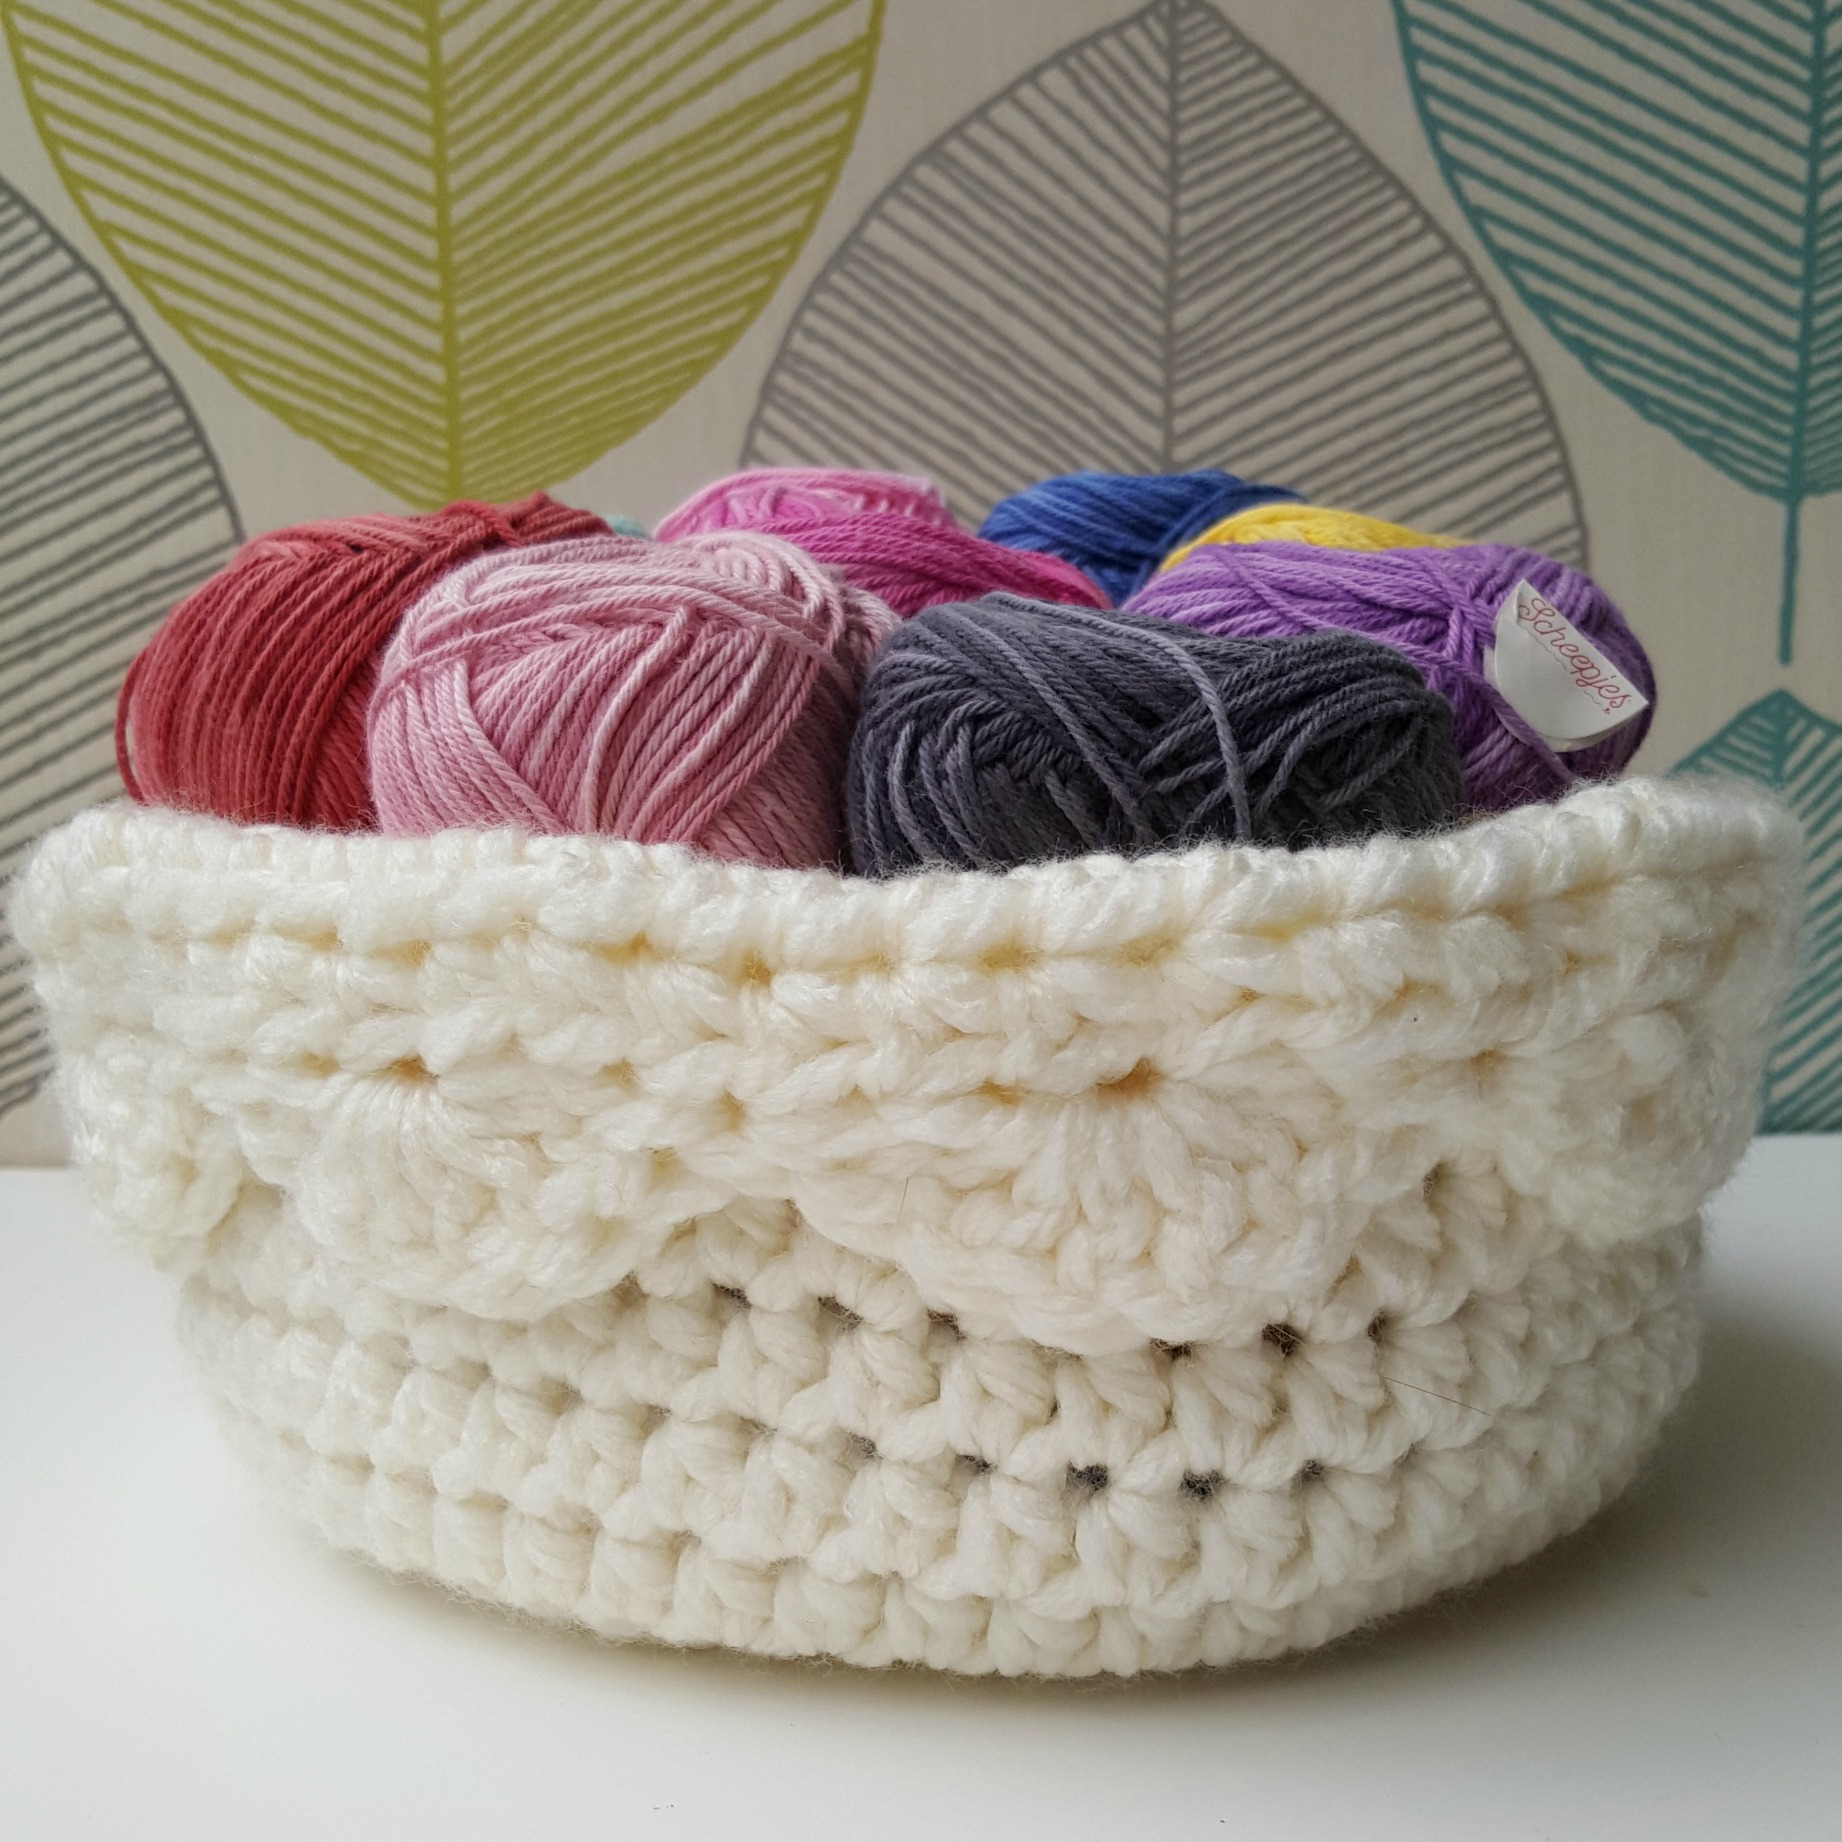 Crochet Basket with a Scalloped Edge Folded Over